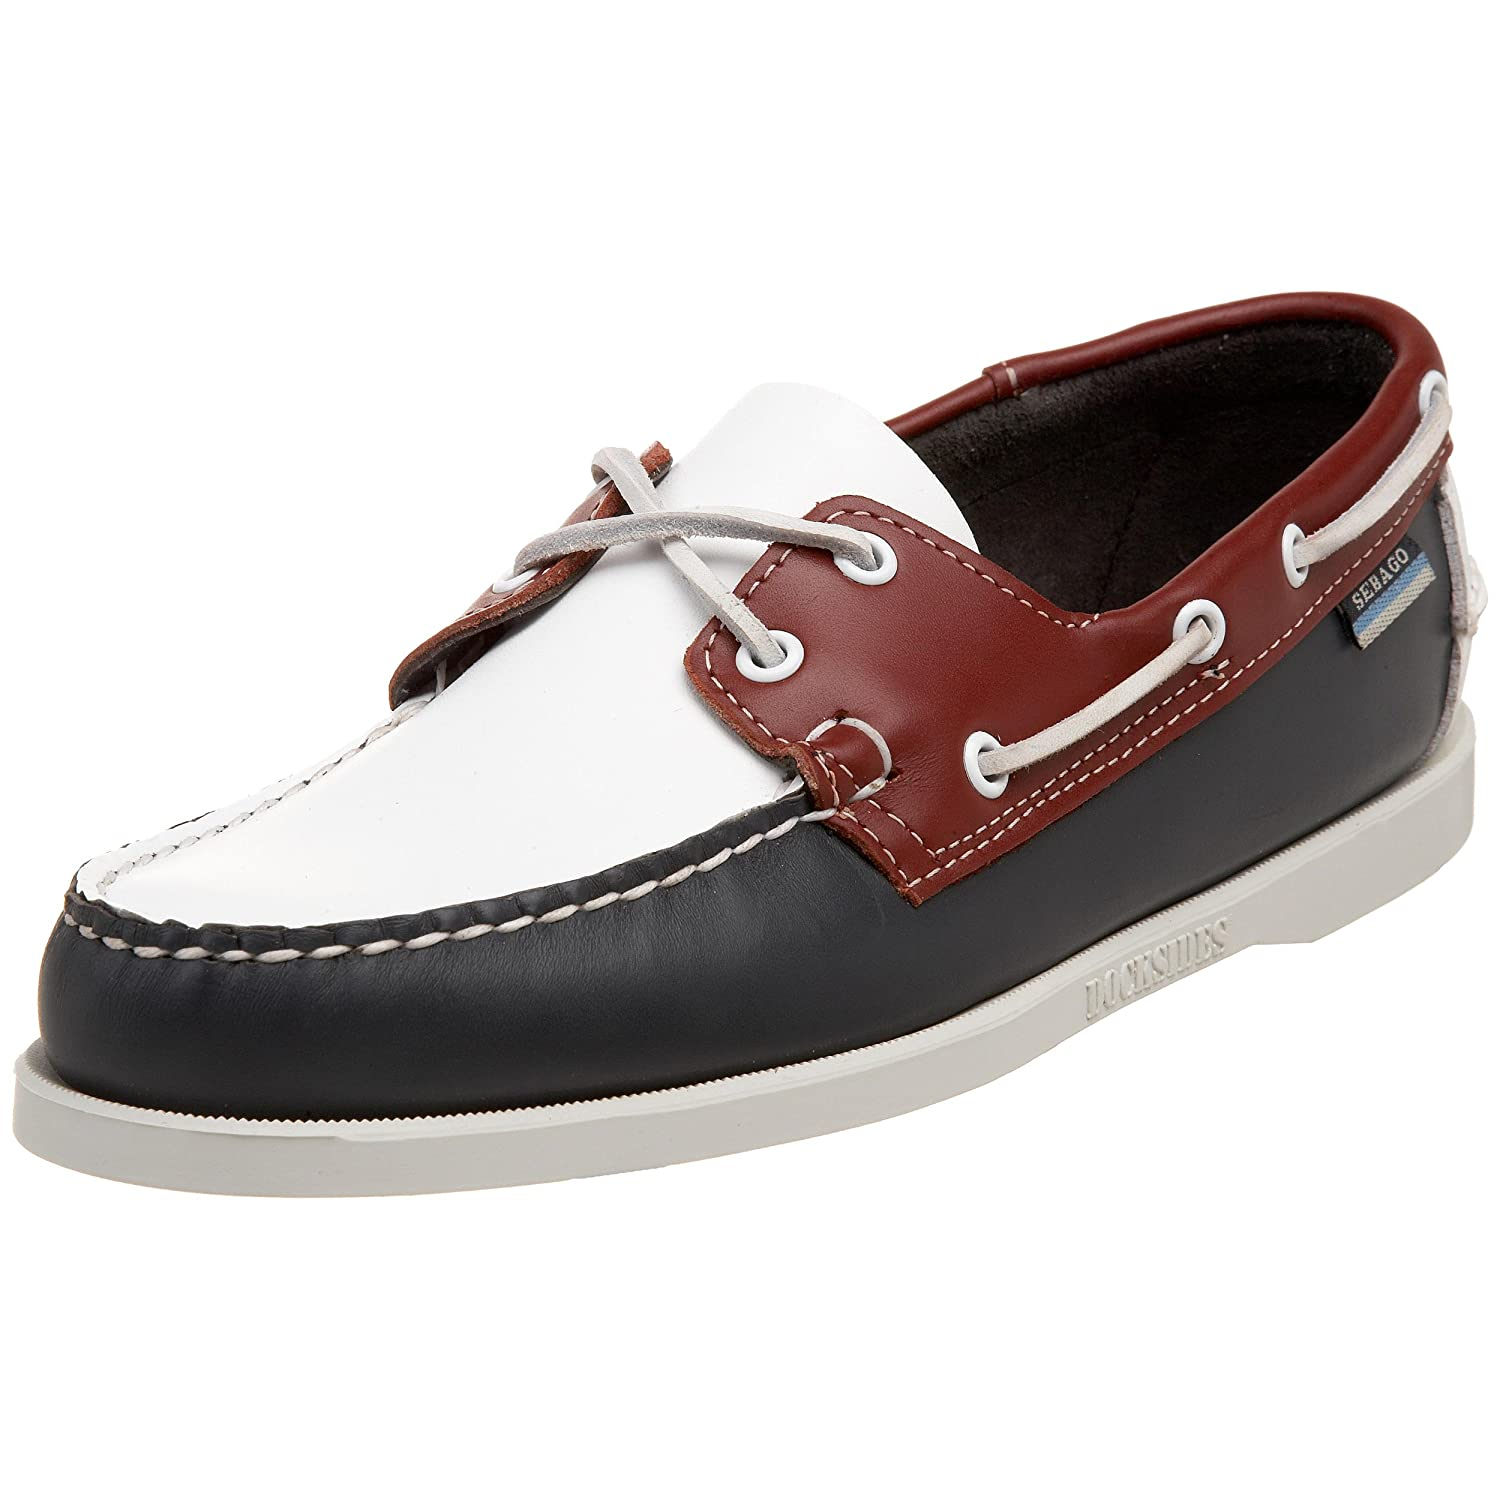 Need Help Deciding on Boat Shoe colors.